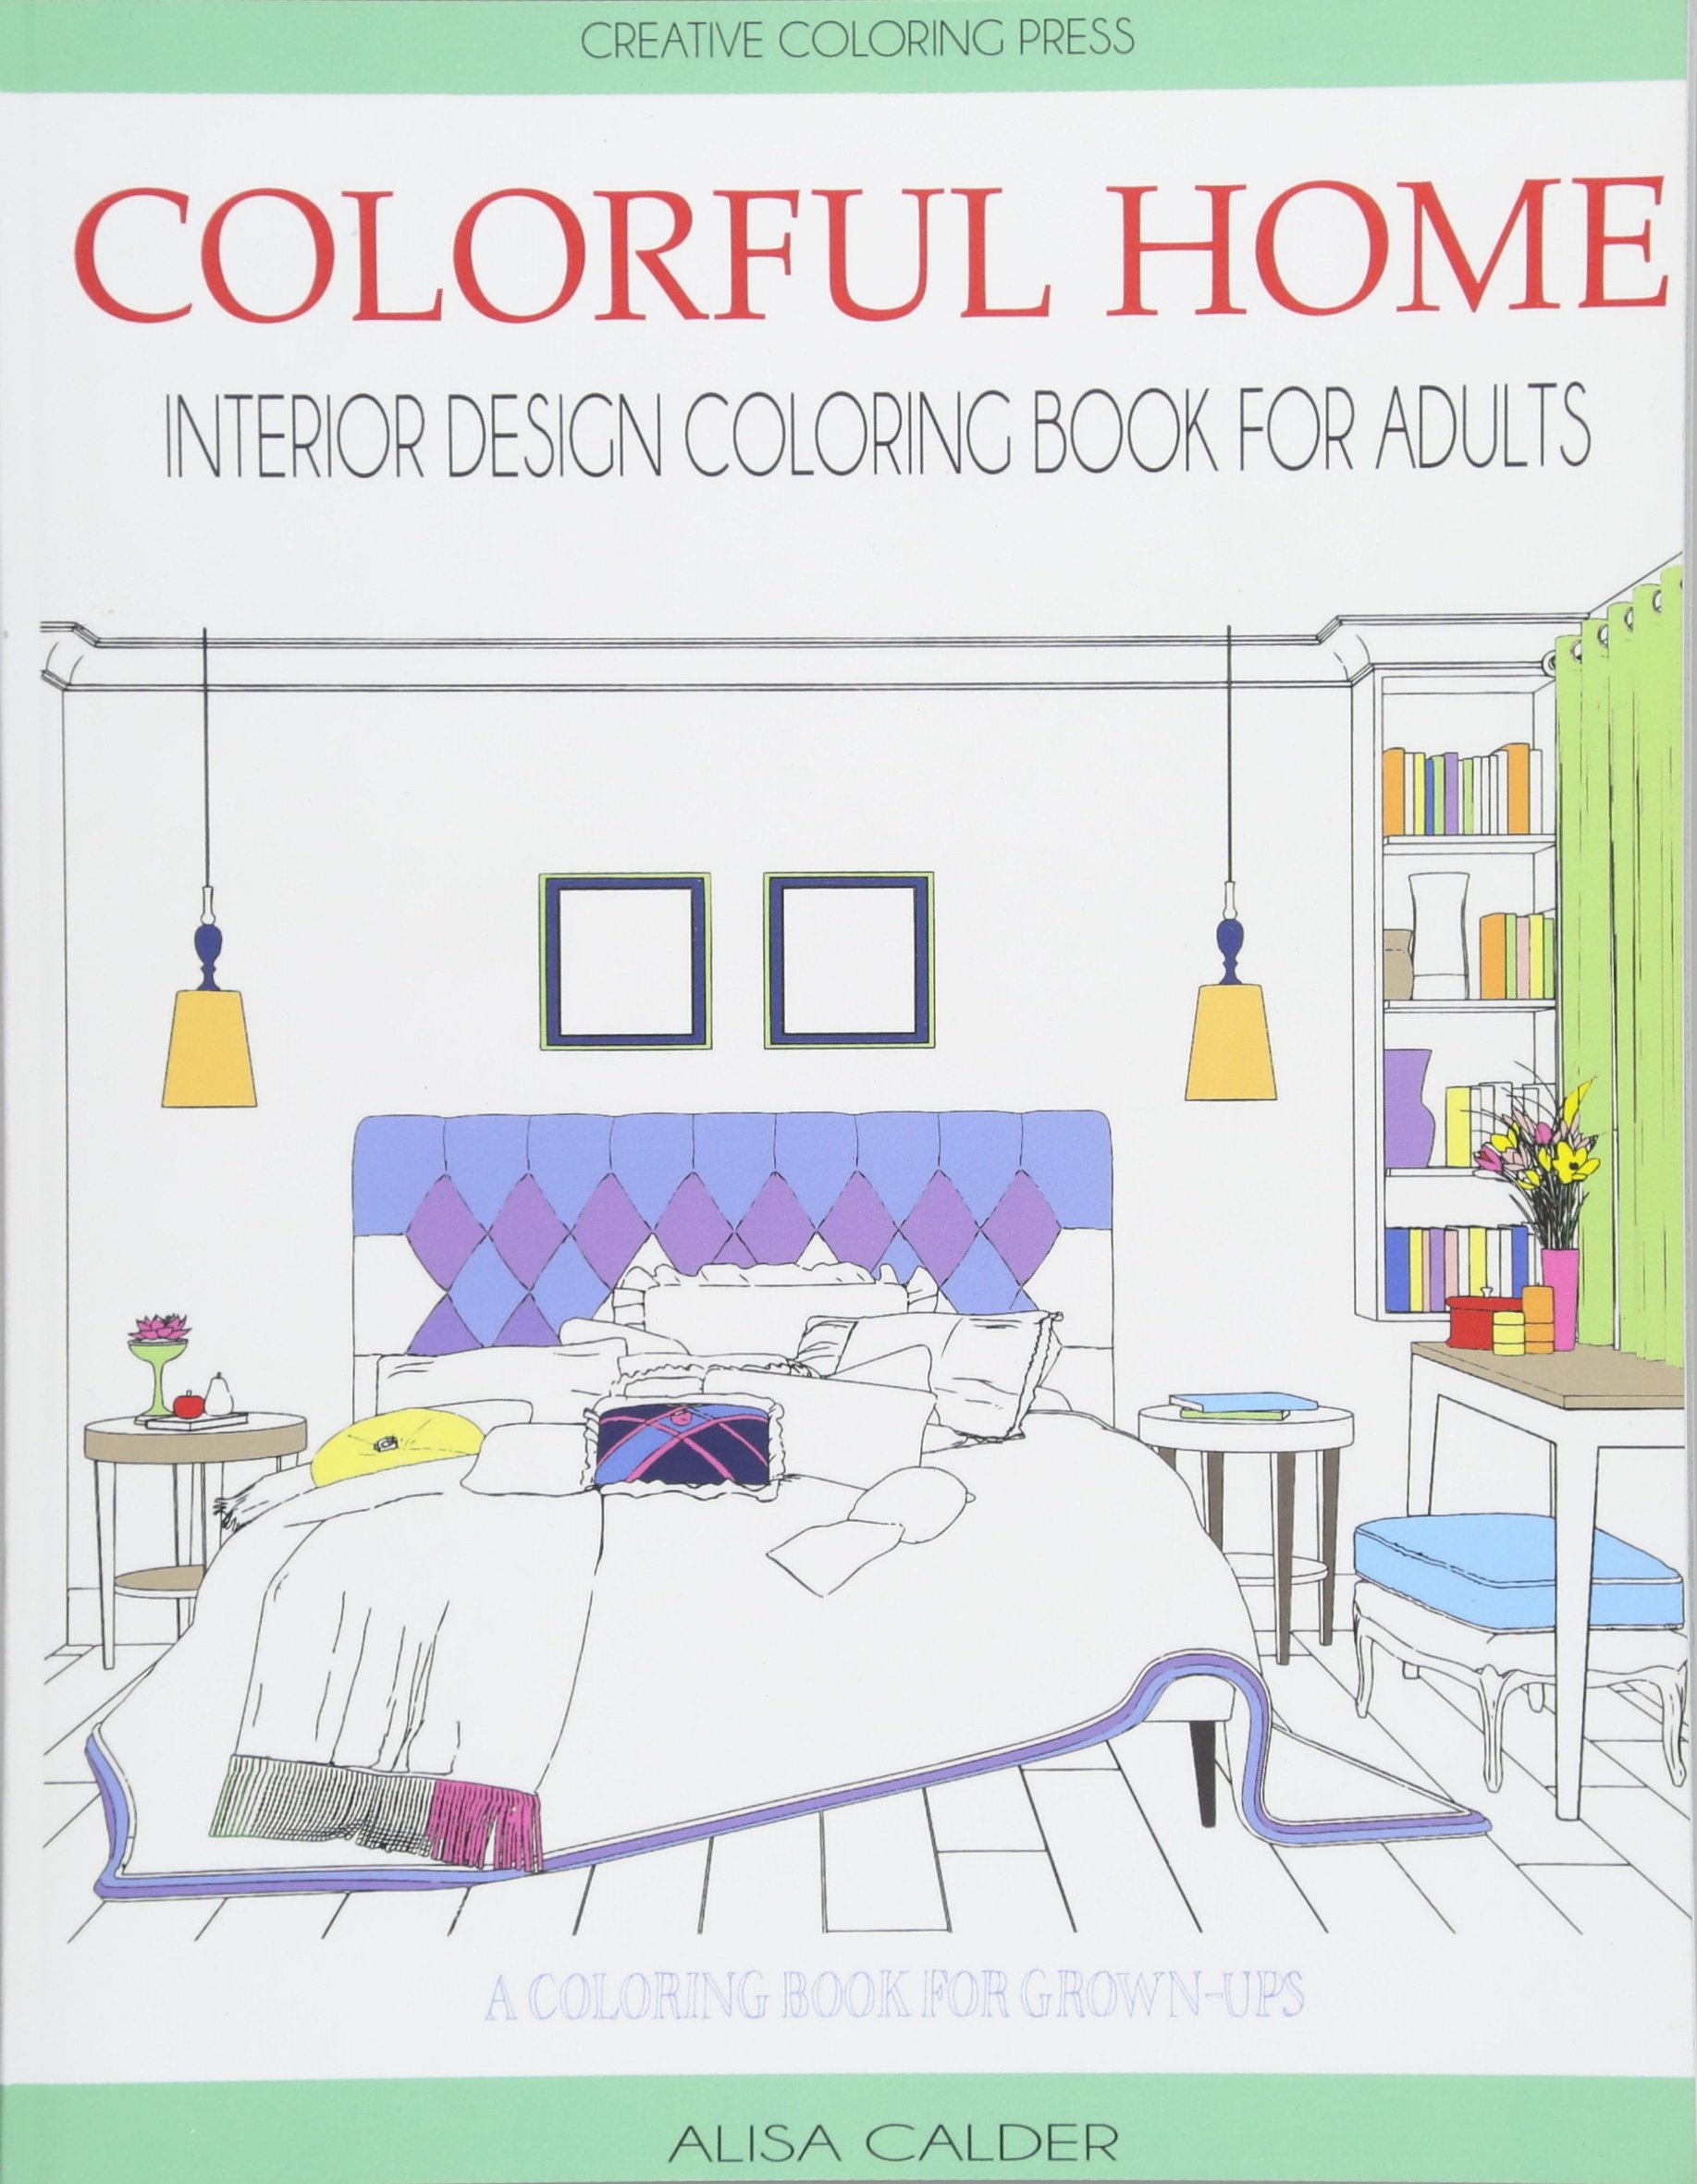 Colorful Home Interior Design Coloring Book for Adults House